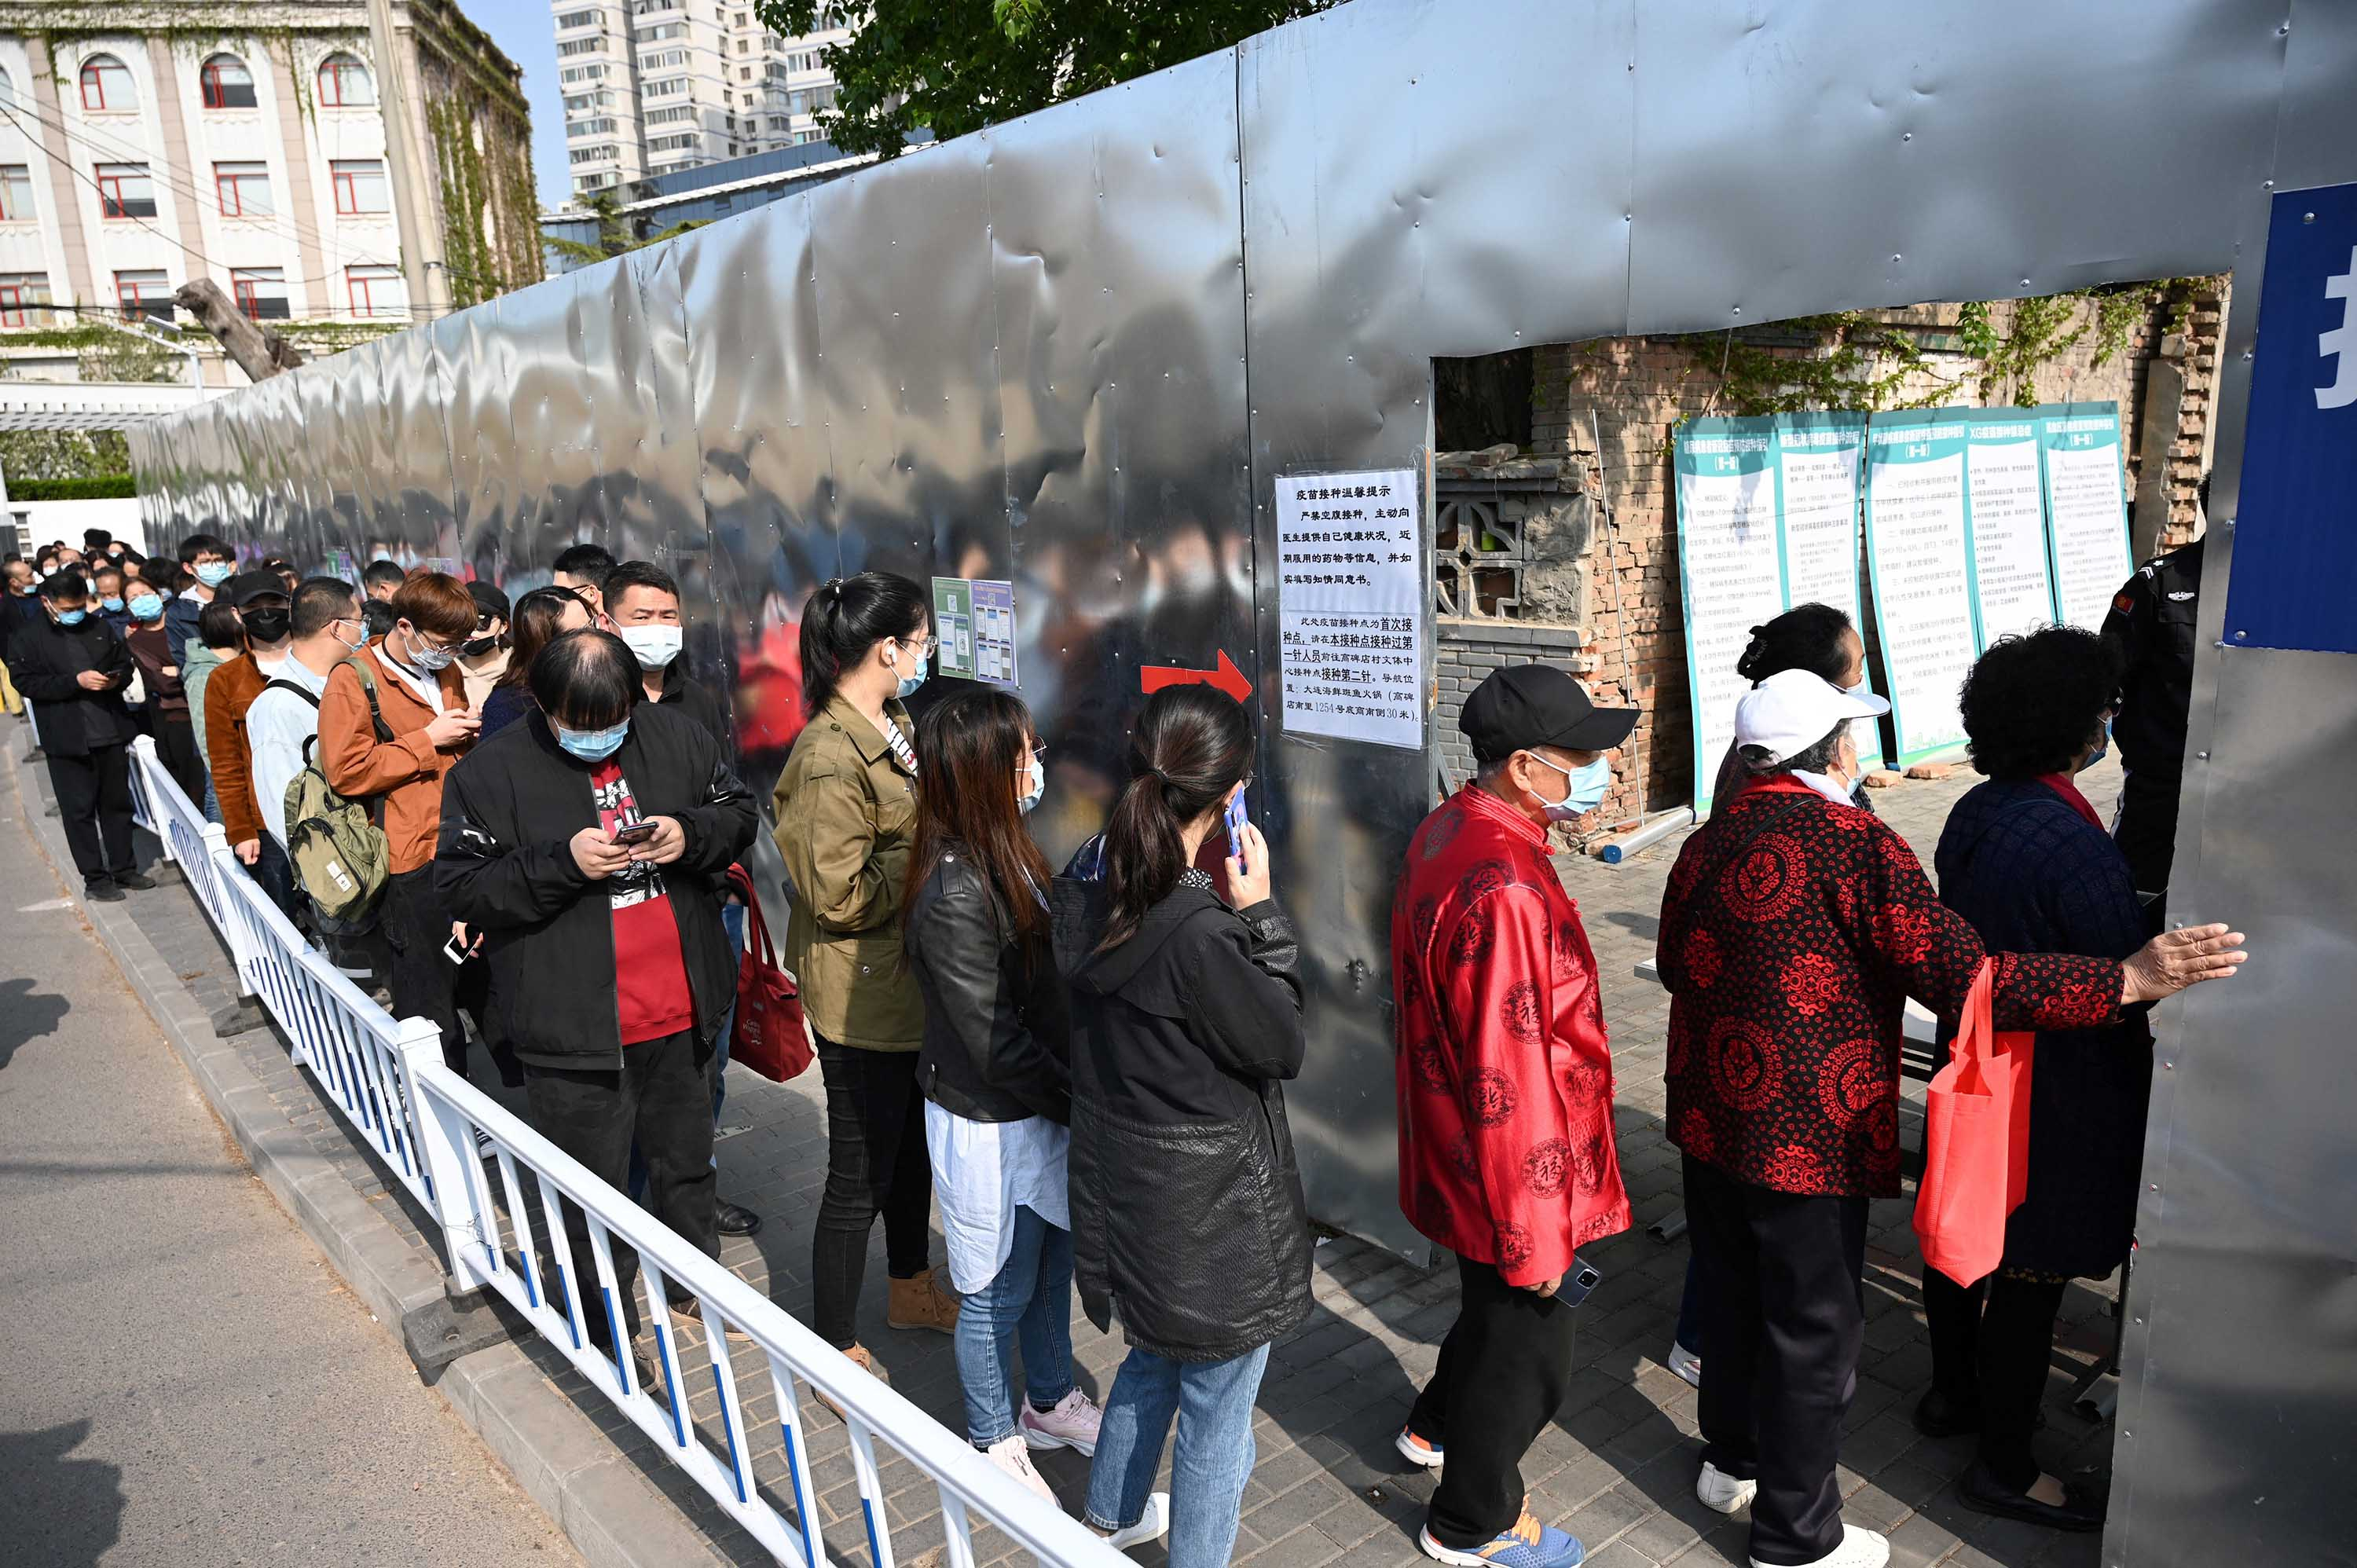 People line up to be vaccinated against Covid-19 outside a residential compound in Beijing, on April 8.